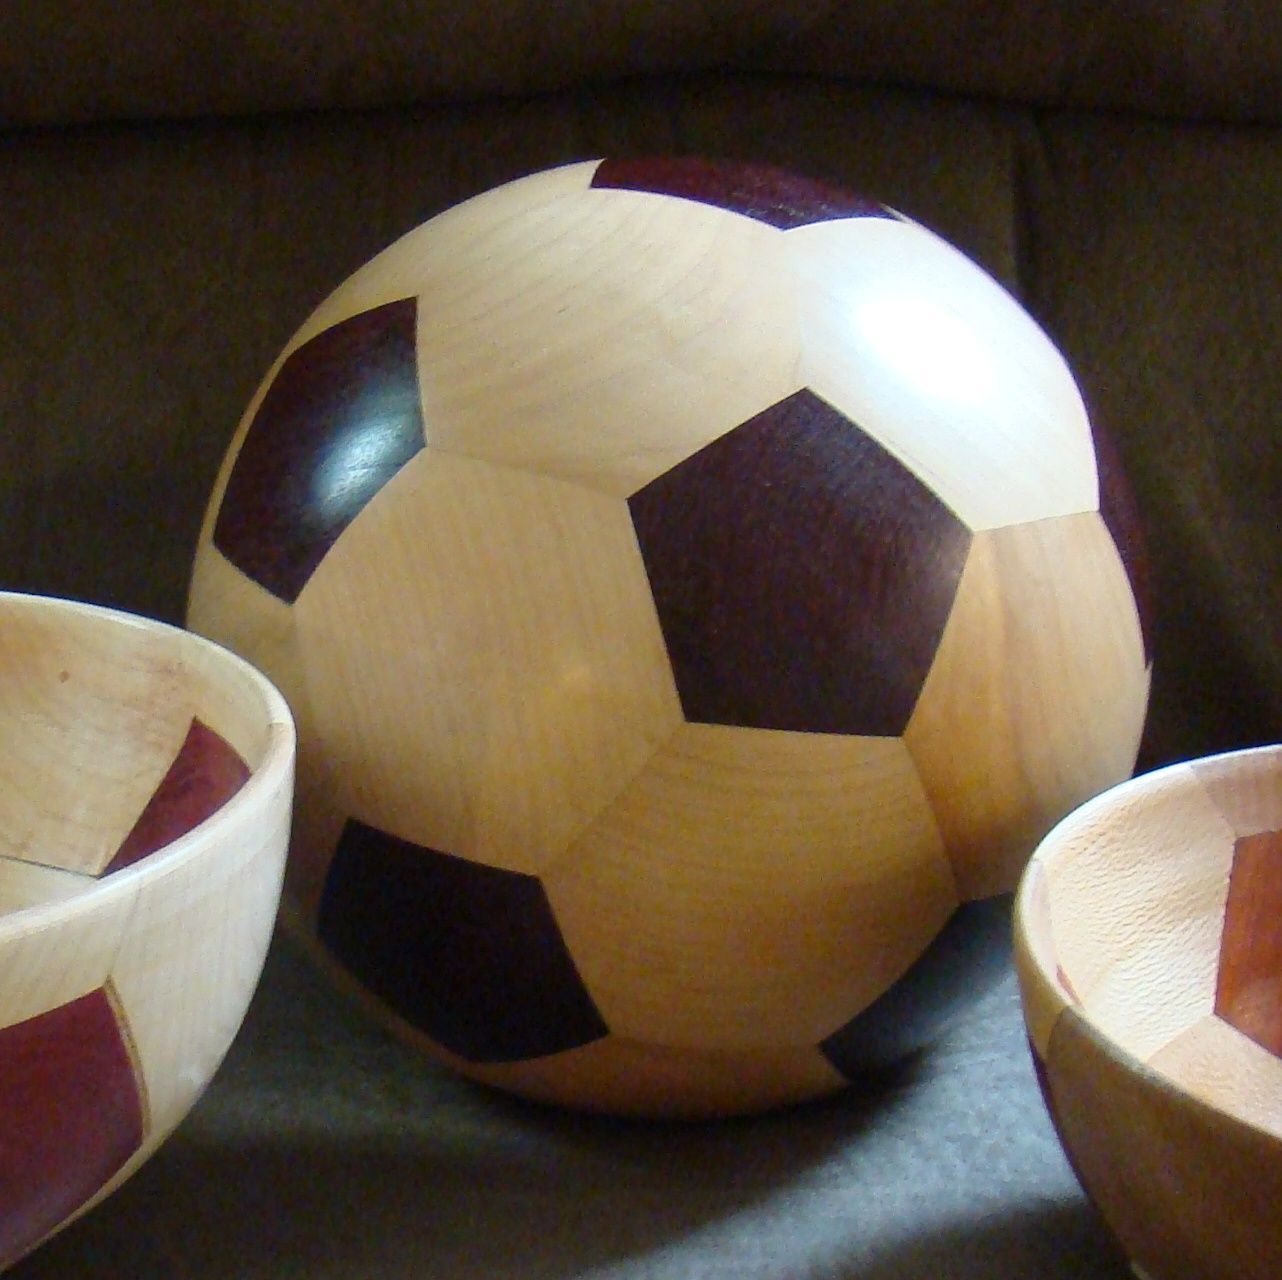 Buy A Custom Segmented Wooden Soccer Ball Made To Order